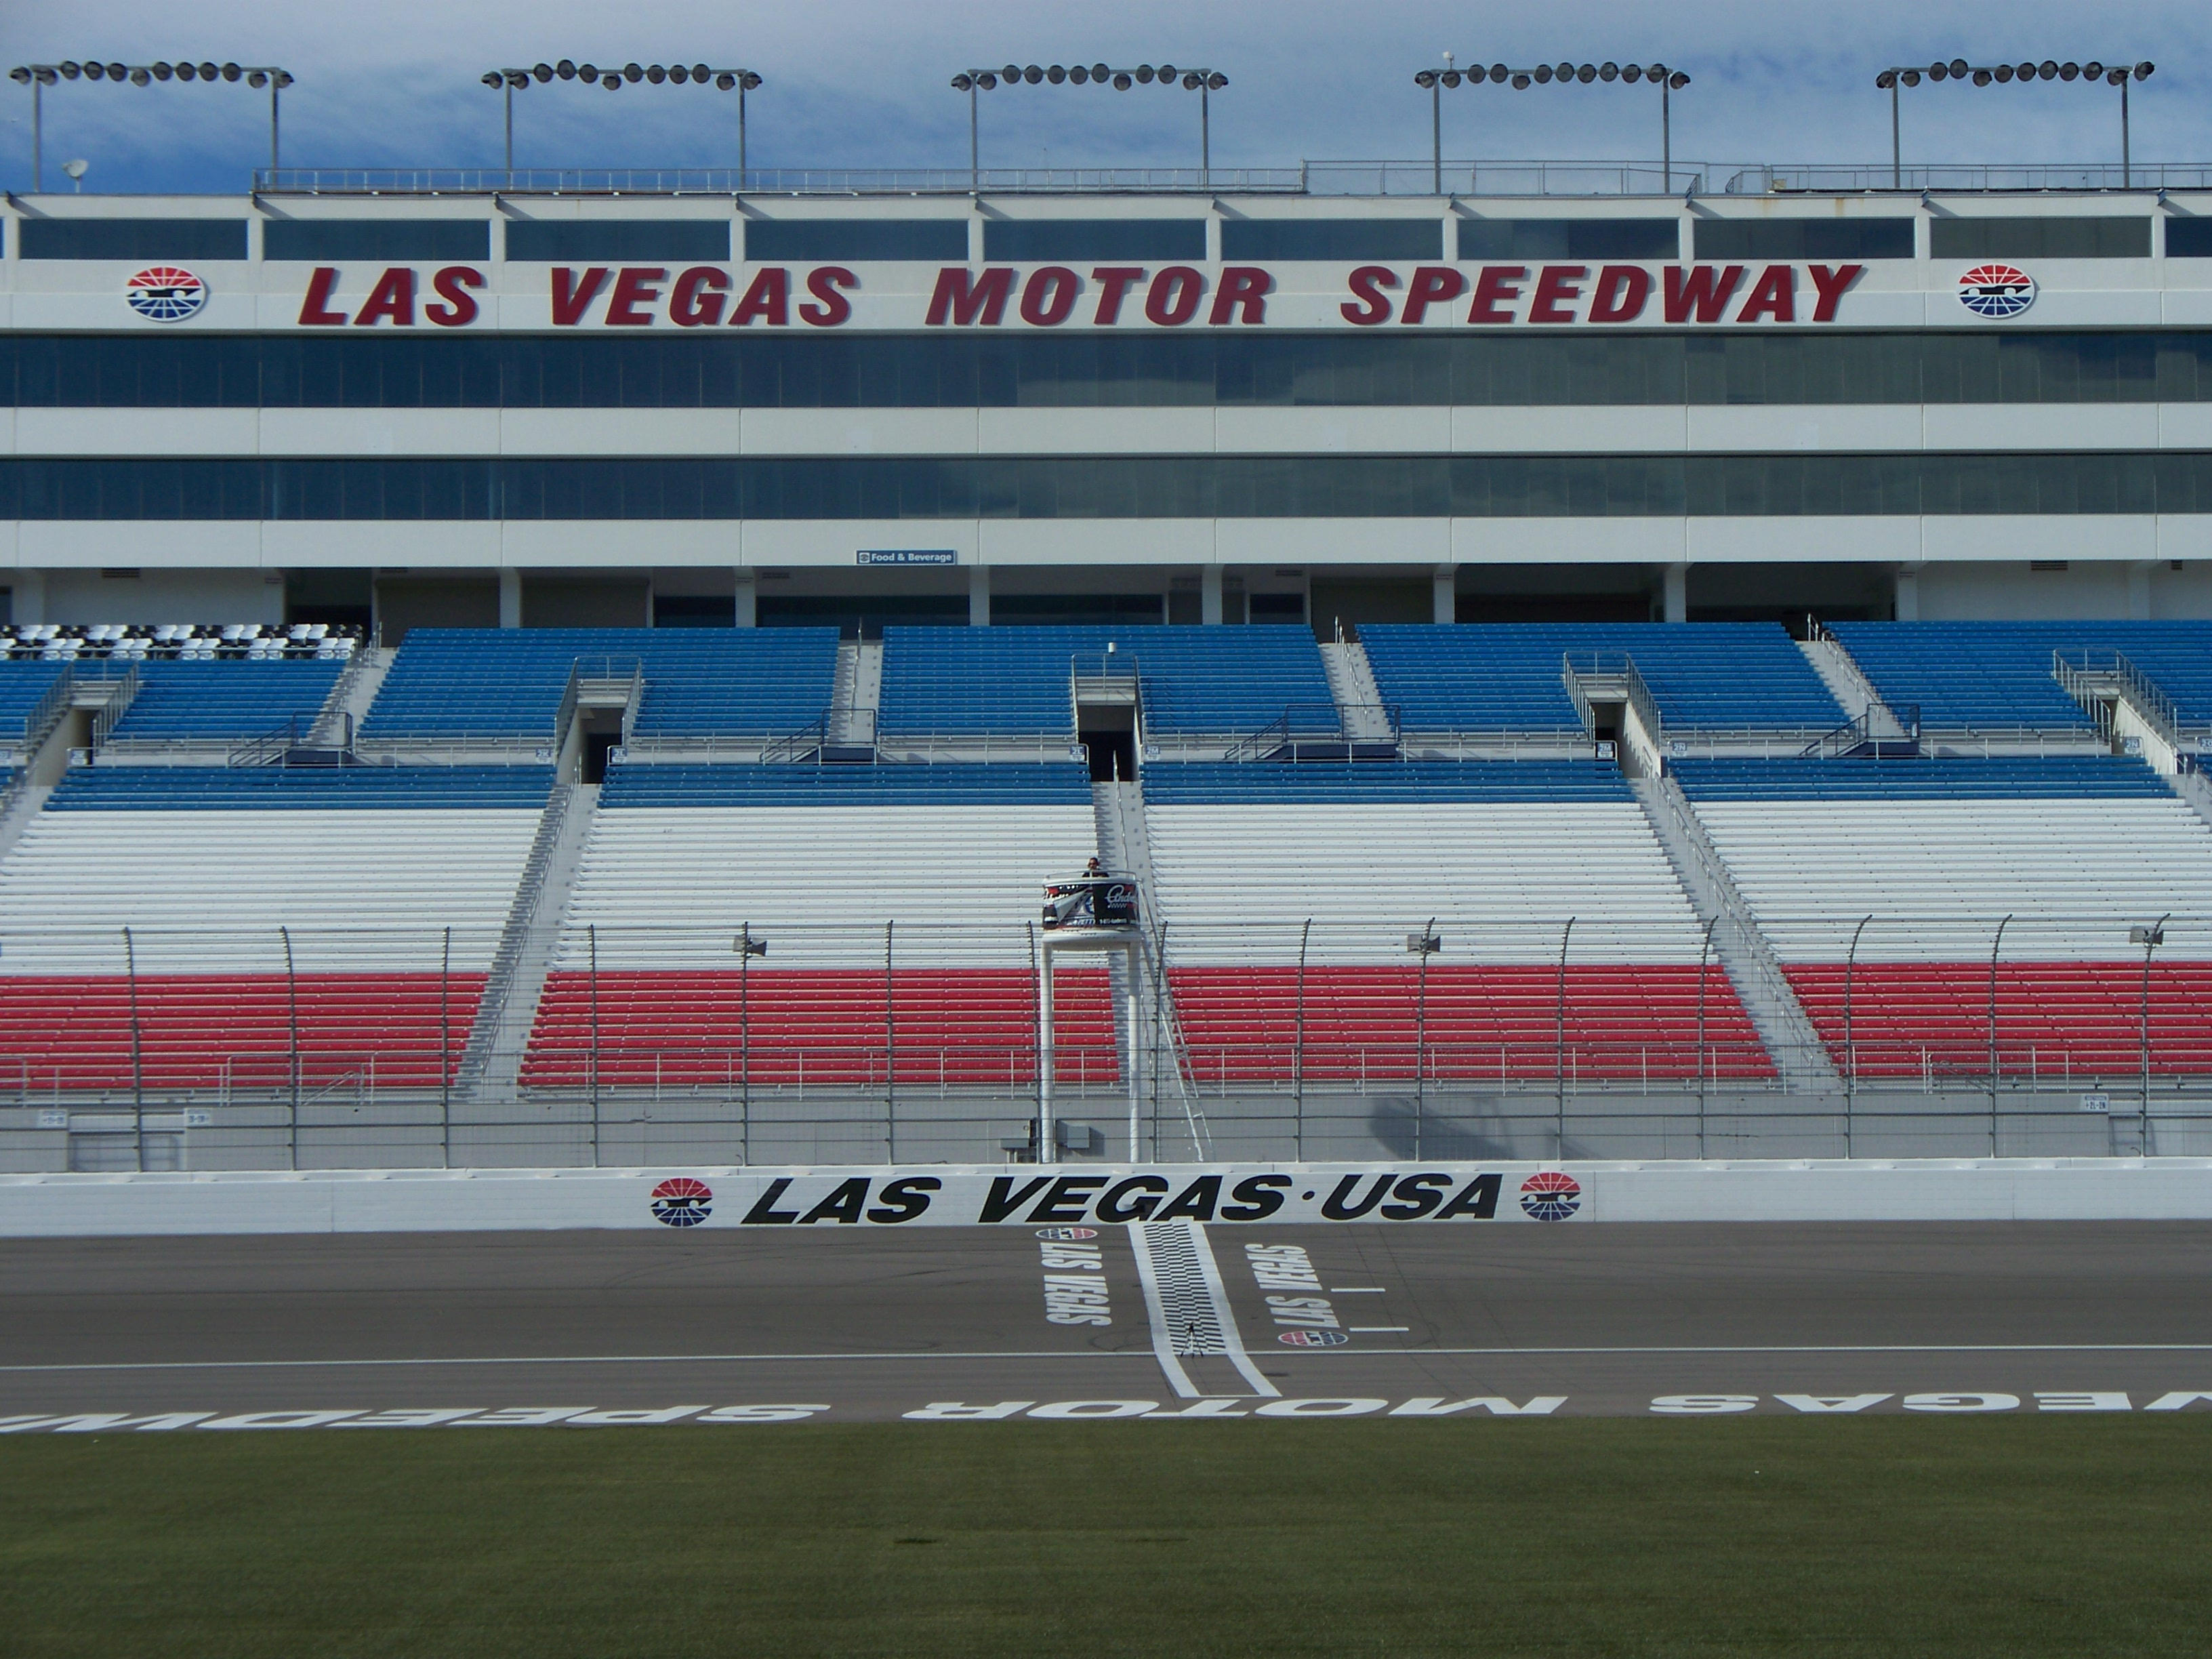 Las vegas motor speedway hotels bike gallery for Hotels close to las vegas motor speedway